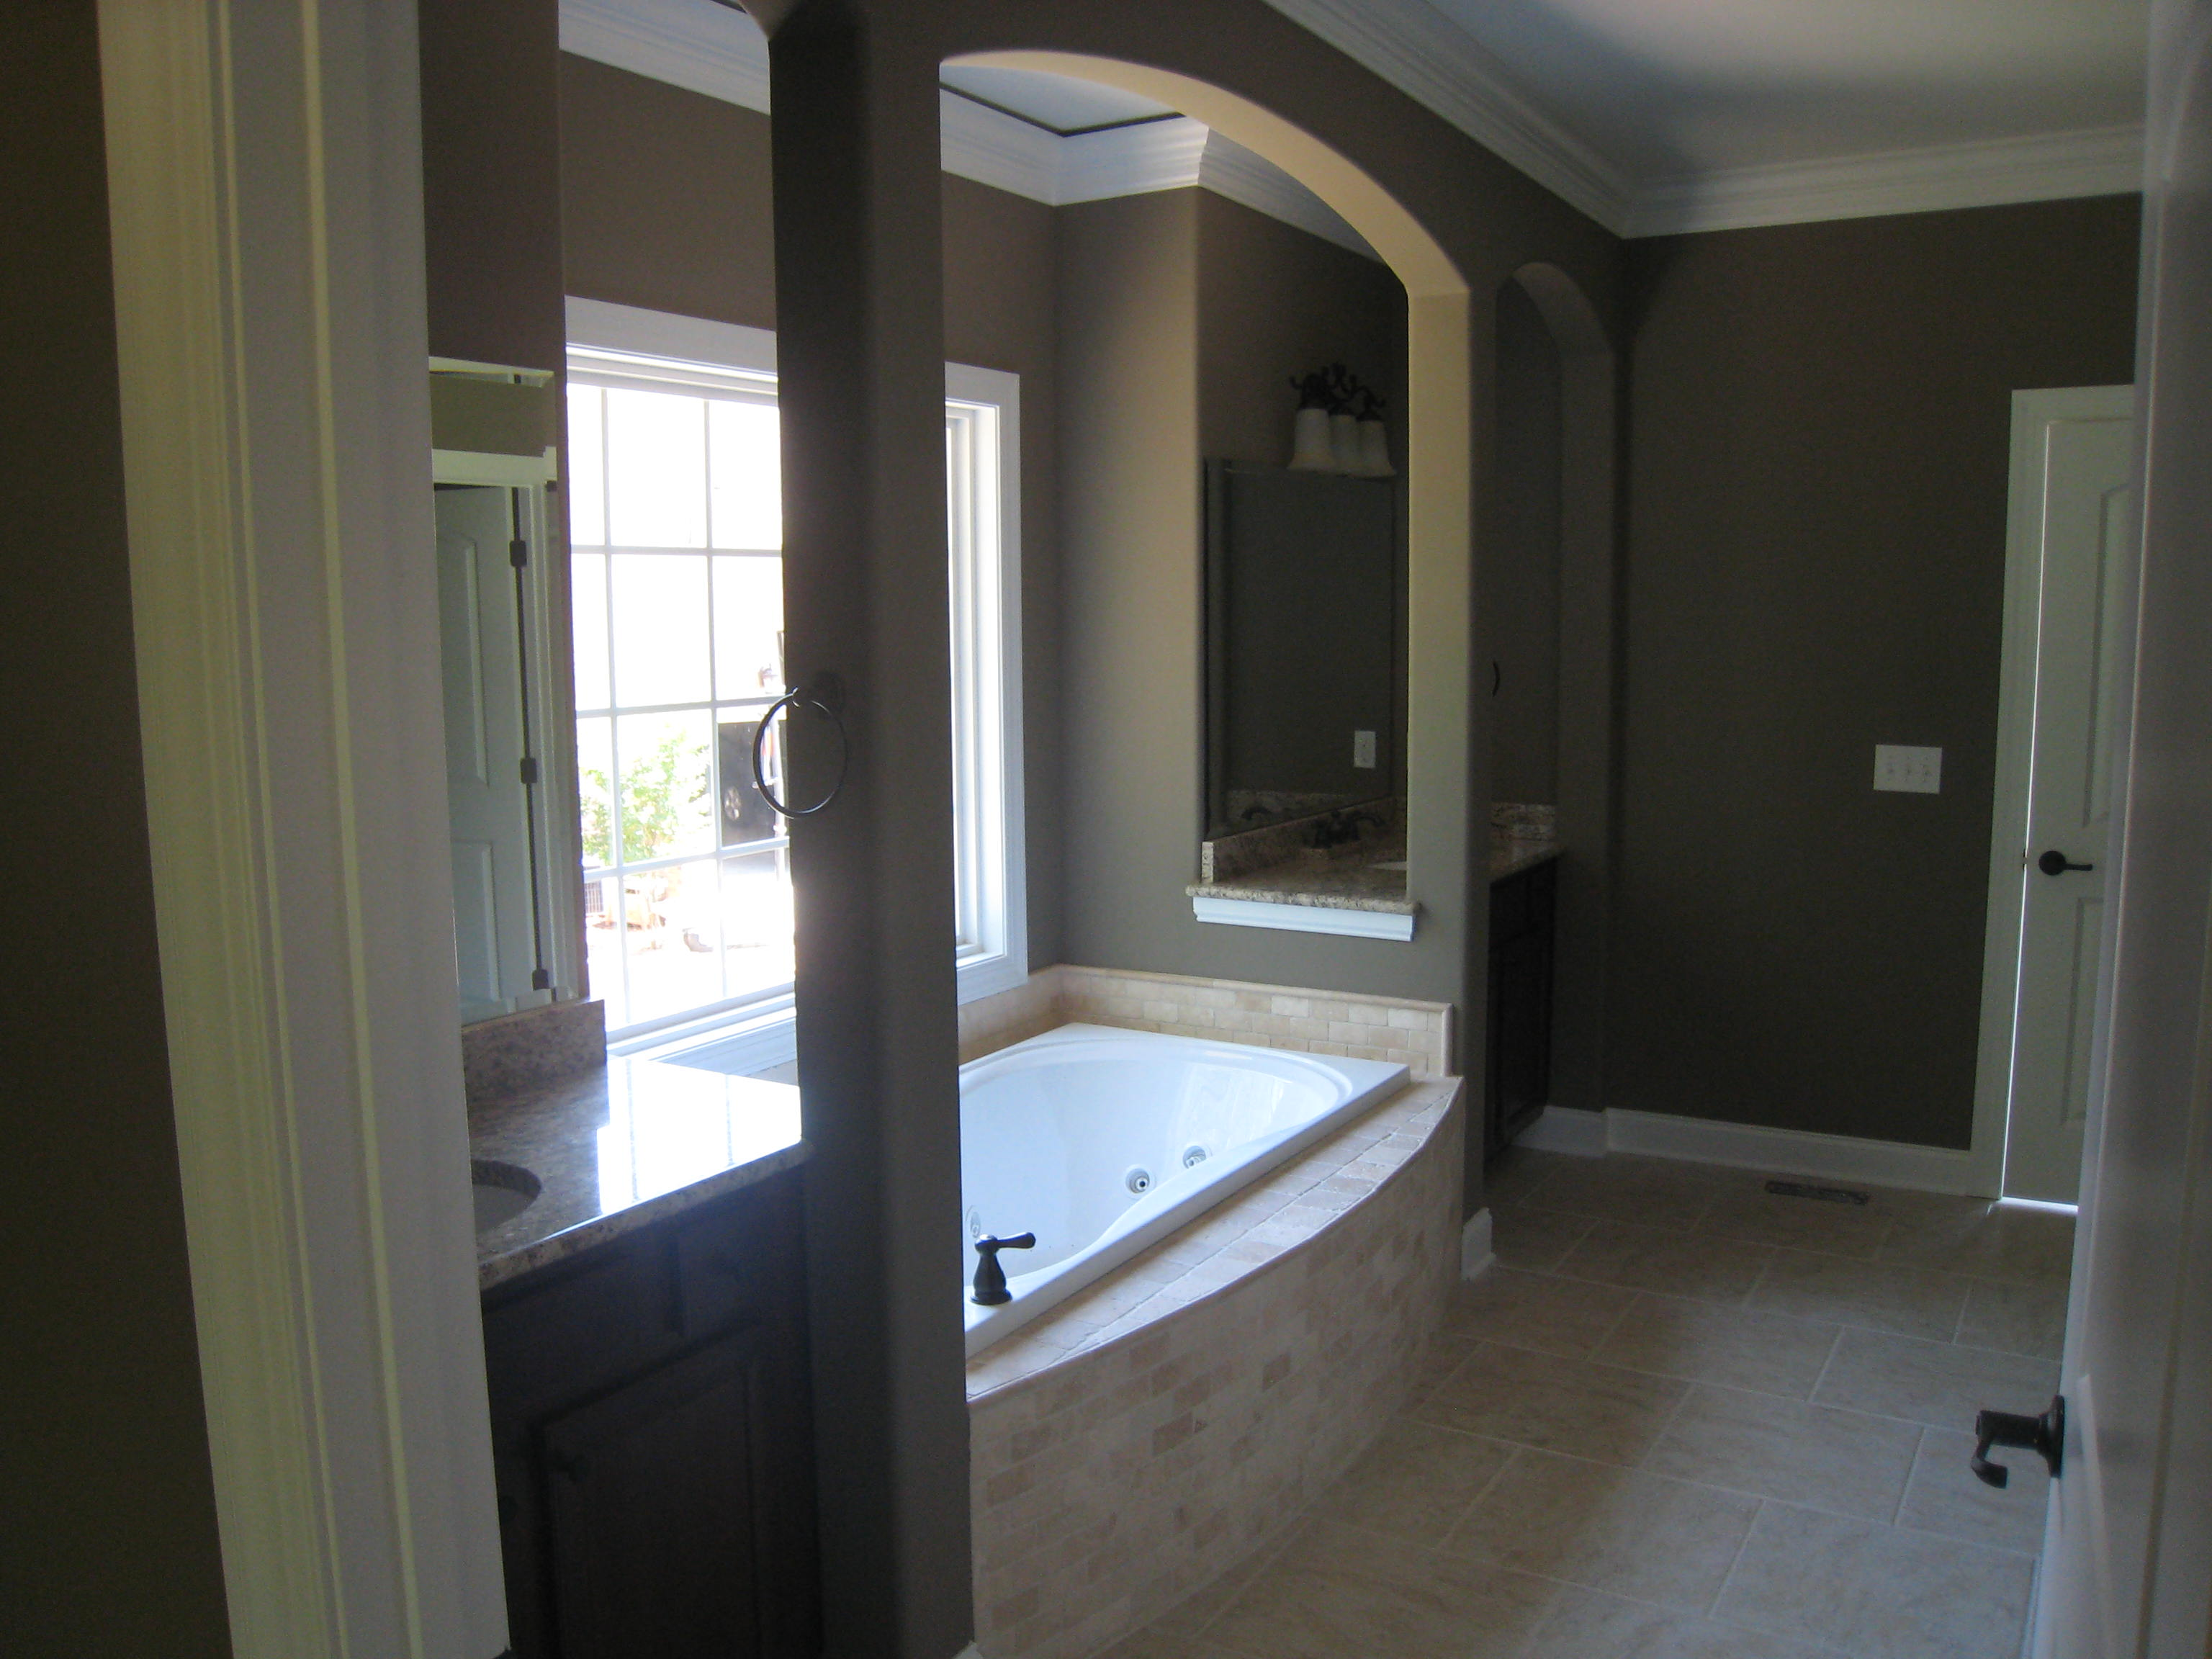 Bathtub design and installation executed by Hedrick Creative Building, LLC in Lexington, NC